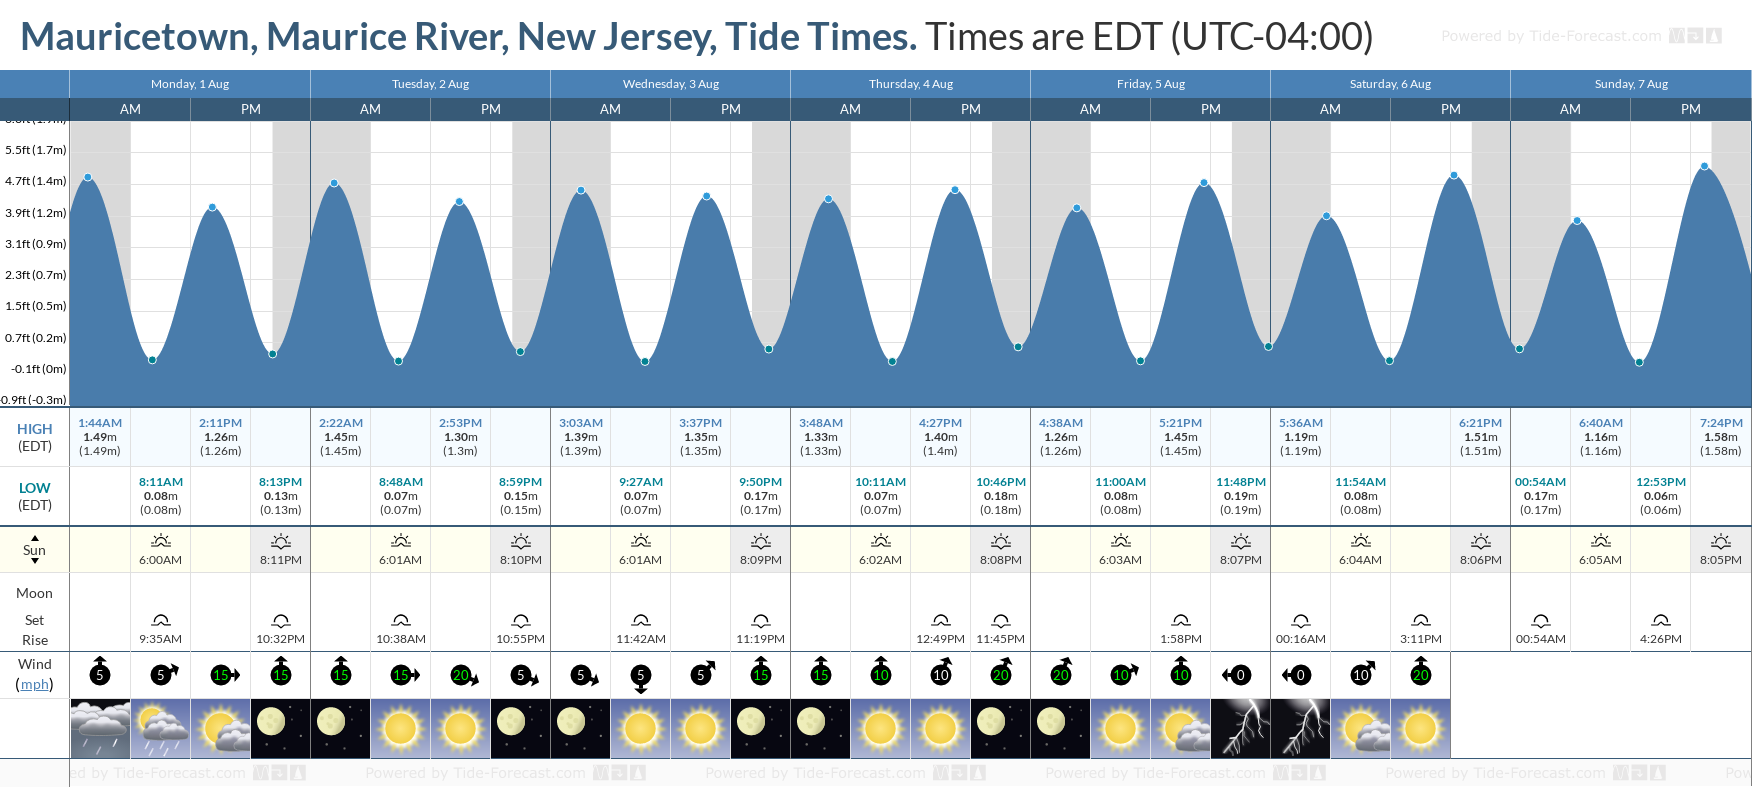 Mauricetown, Maurice River, New Jersey Tide Chart including high and low tide tide times for the next 7 days